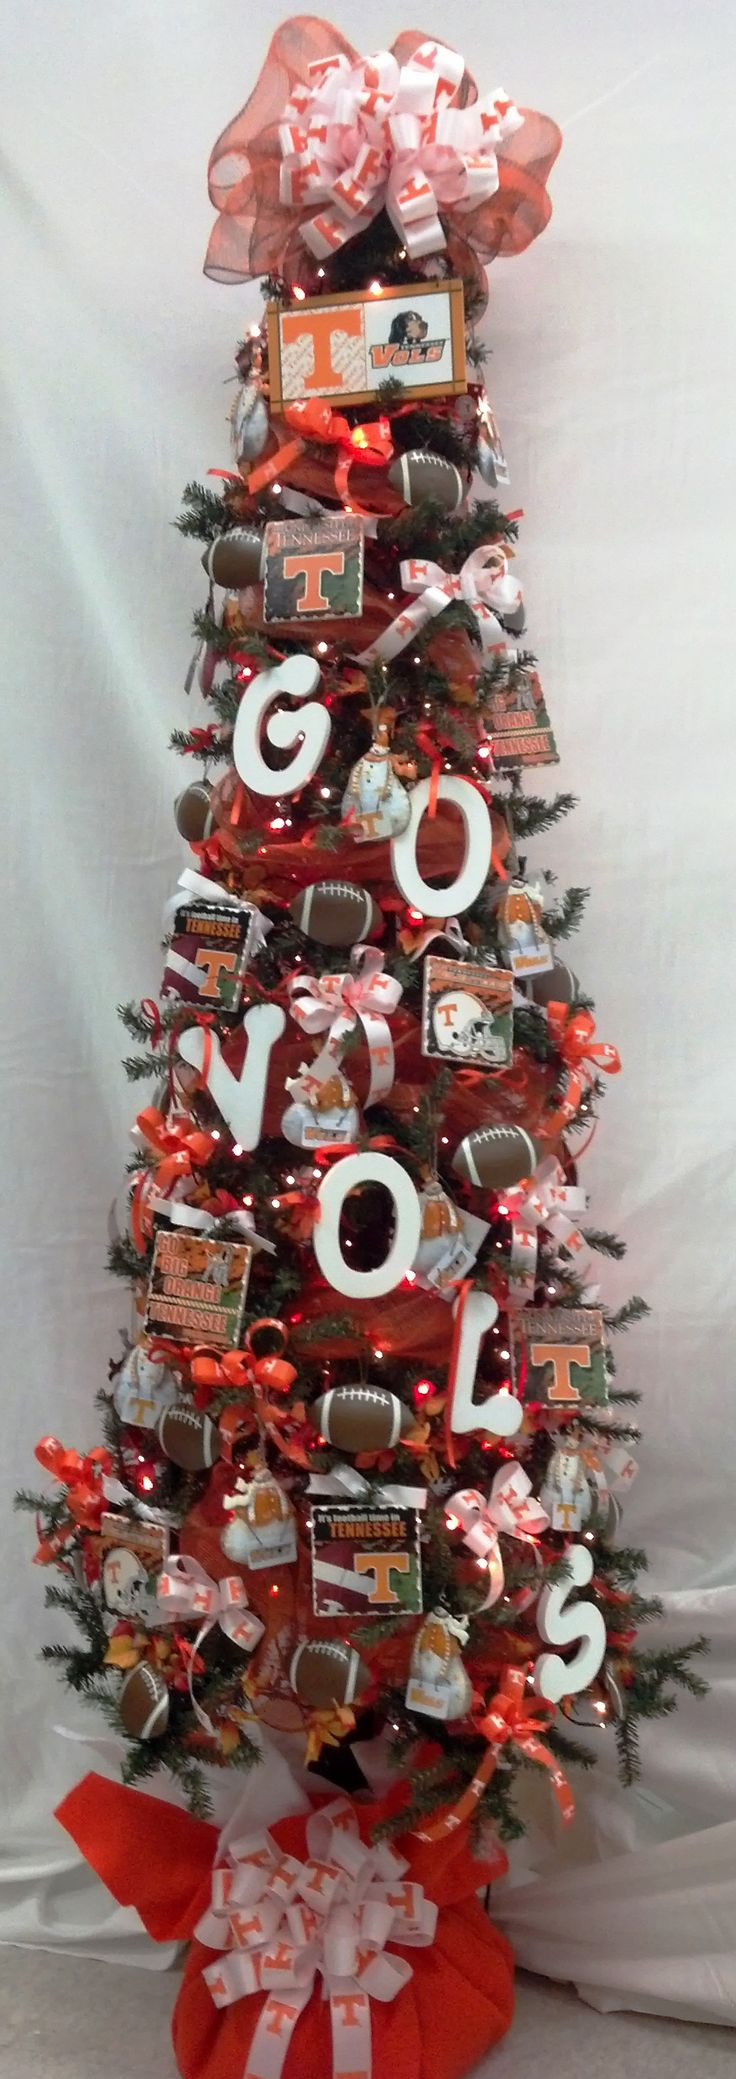 Custom made Tennessee Vols Christmas Tree!  Go Vols!!!! @Kristin Orsbon this is going to be your tree this year lol